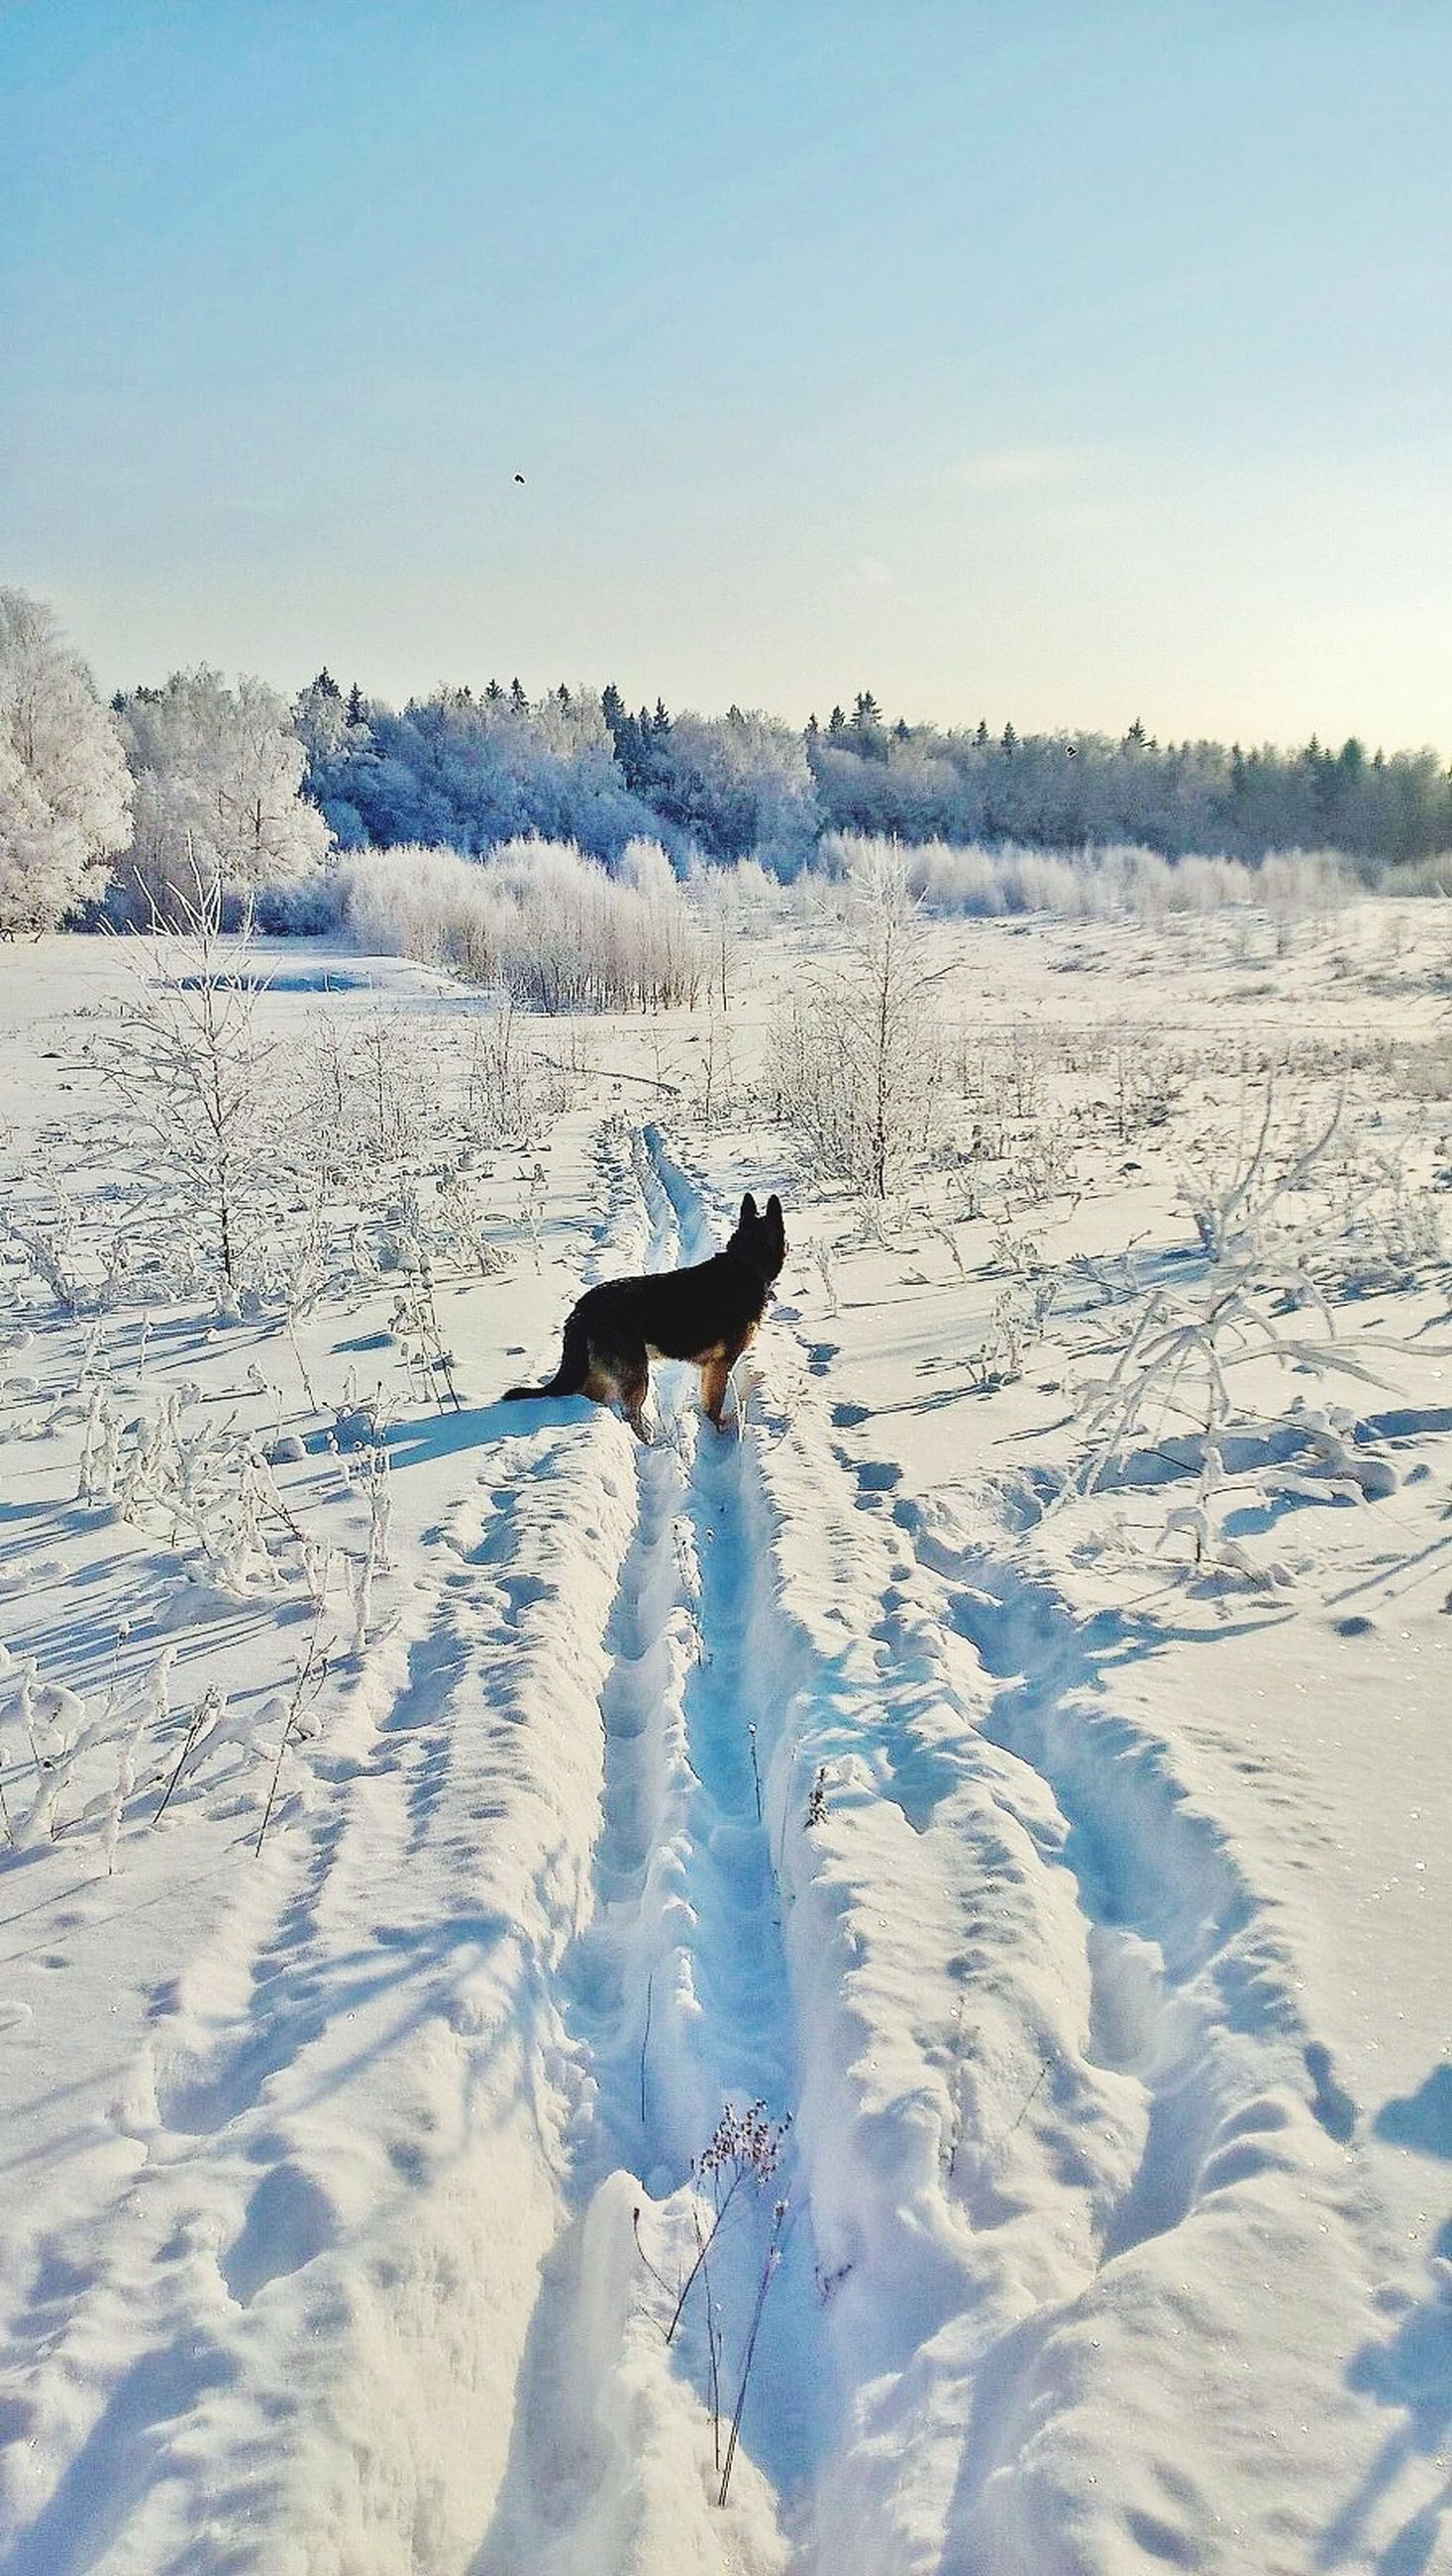 one animal, animal themes, snow, winter, cold temperature, bird, animals in the wild, clear sky, nature, wildlife, season, beauty in nature, tranquility, tranquil scene, landscape, scenics, outdoors, full length, no people, copy space